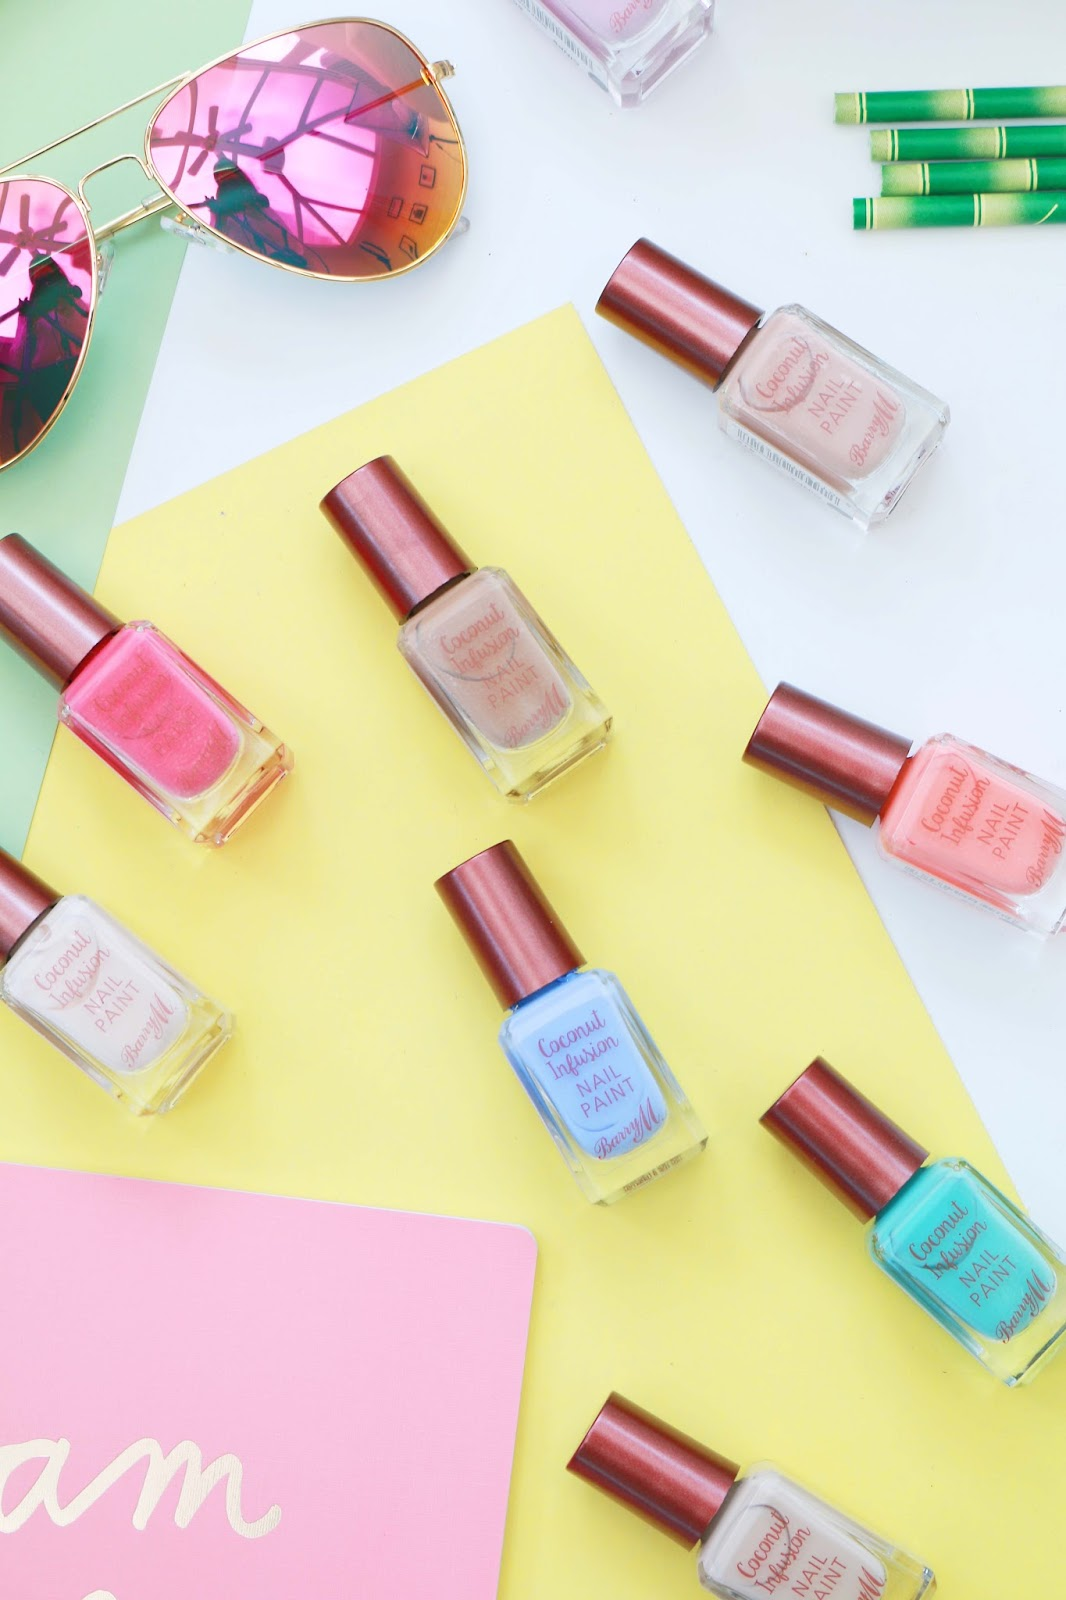 Beauty, Nails, Drugstore, Barry M, Barry M Cosmetics, Summer Nails, Boots, Drugstore, Barry M Coconut Infusion Range